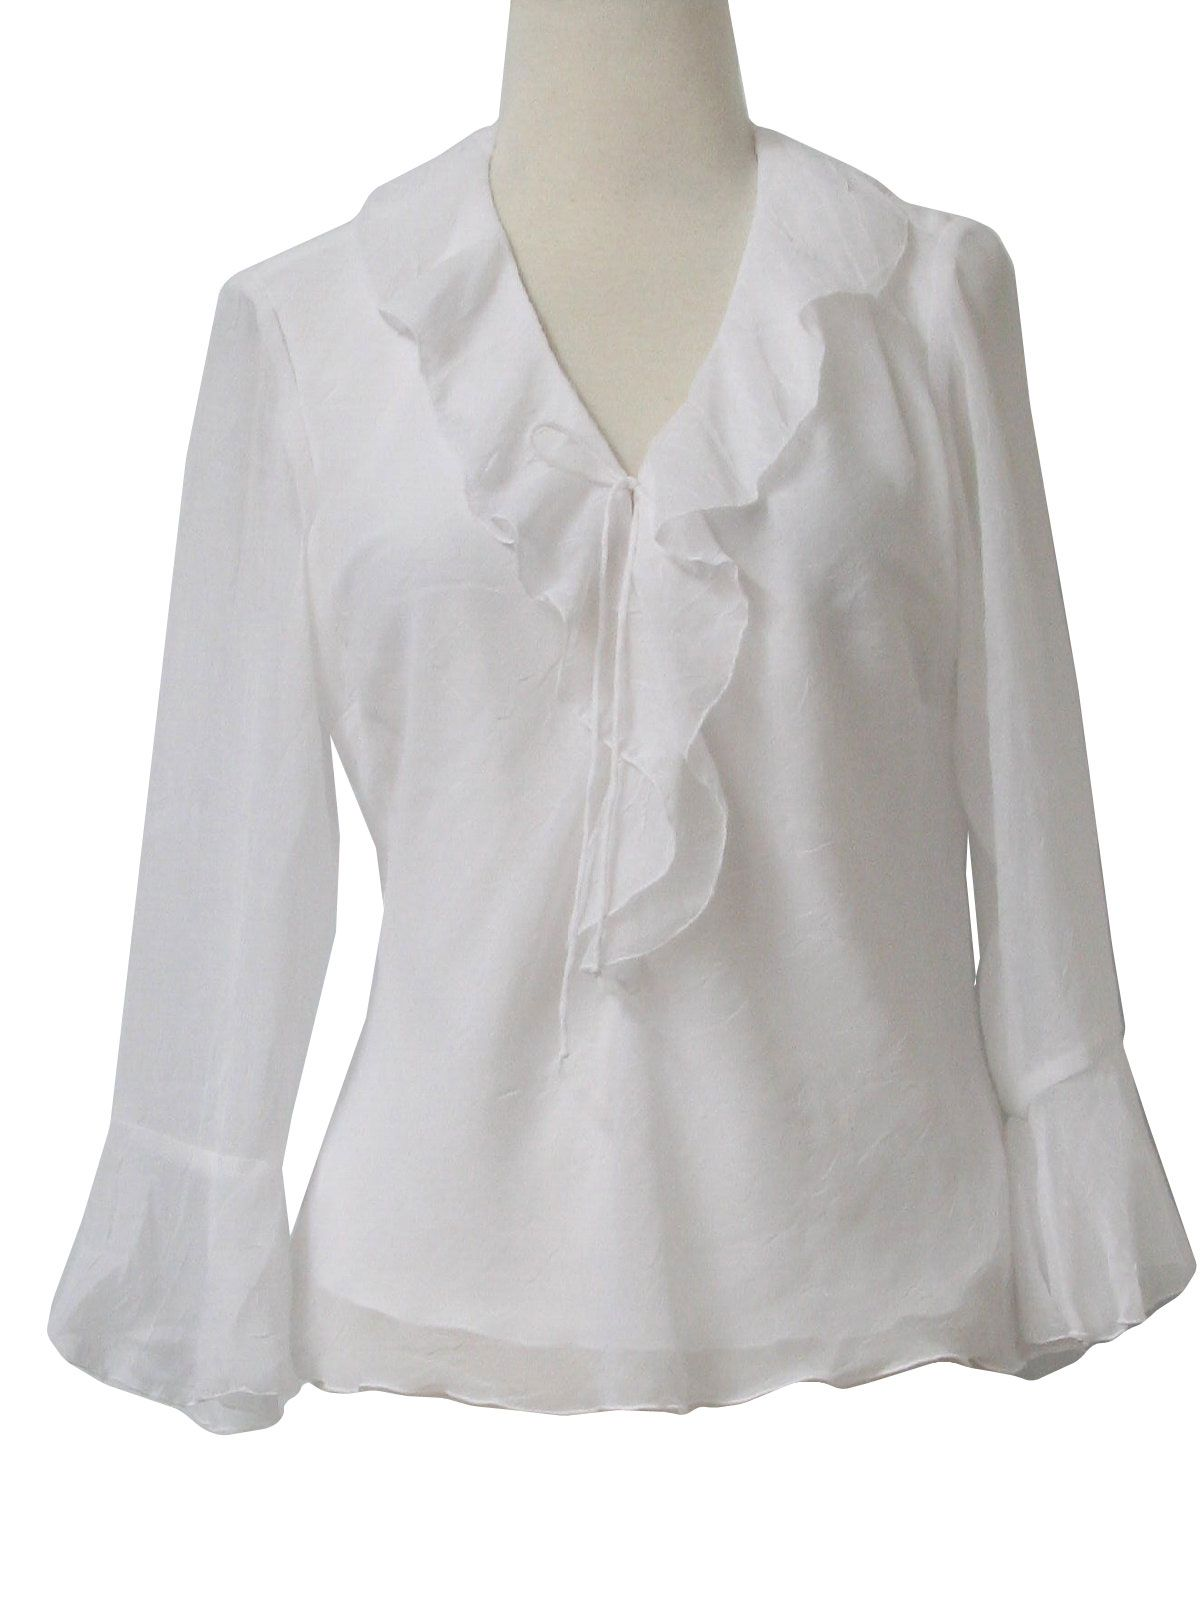 White Ruffle Blouse Photo Album - Reikian